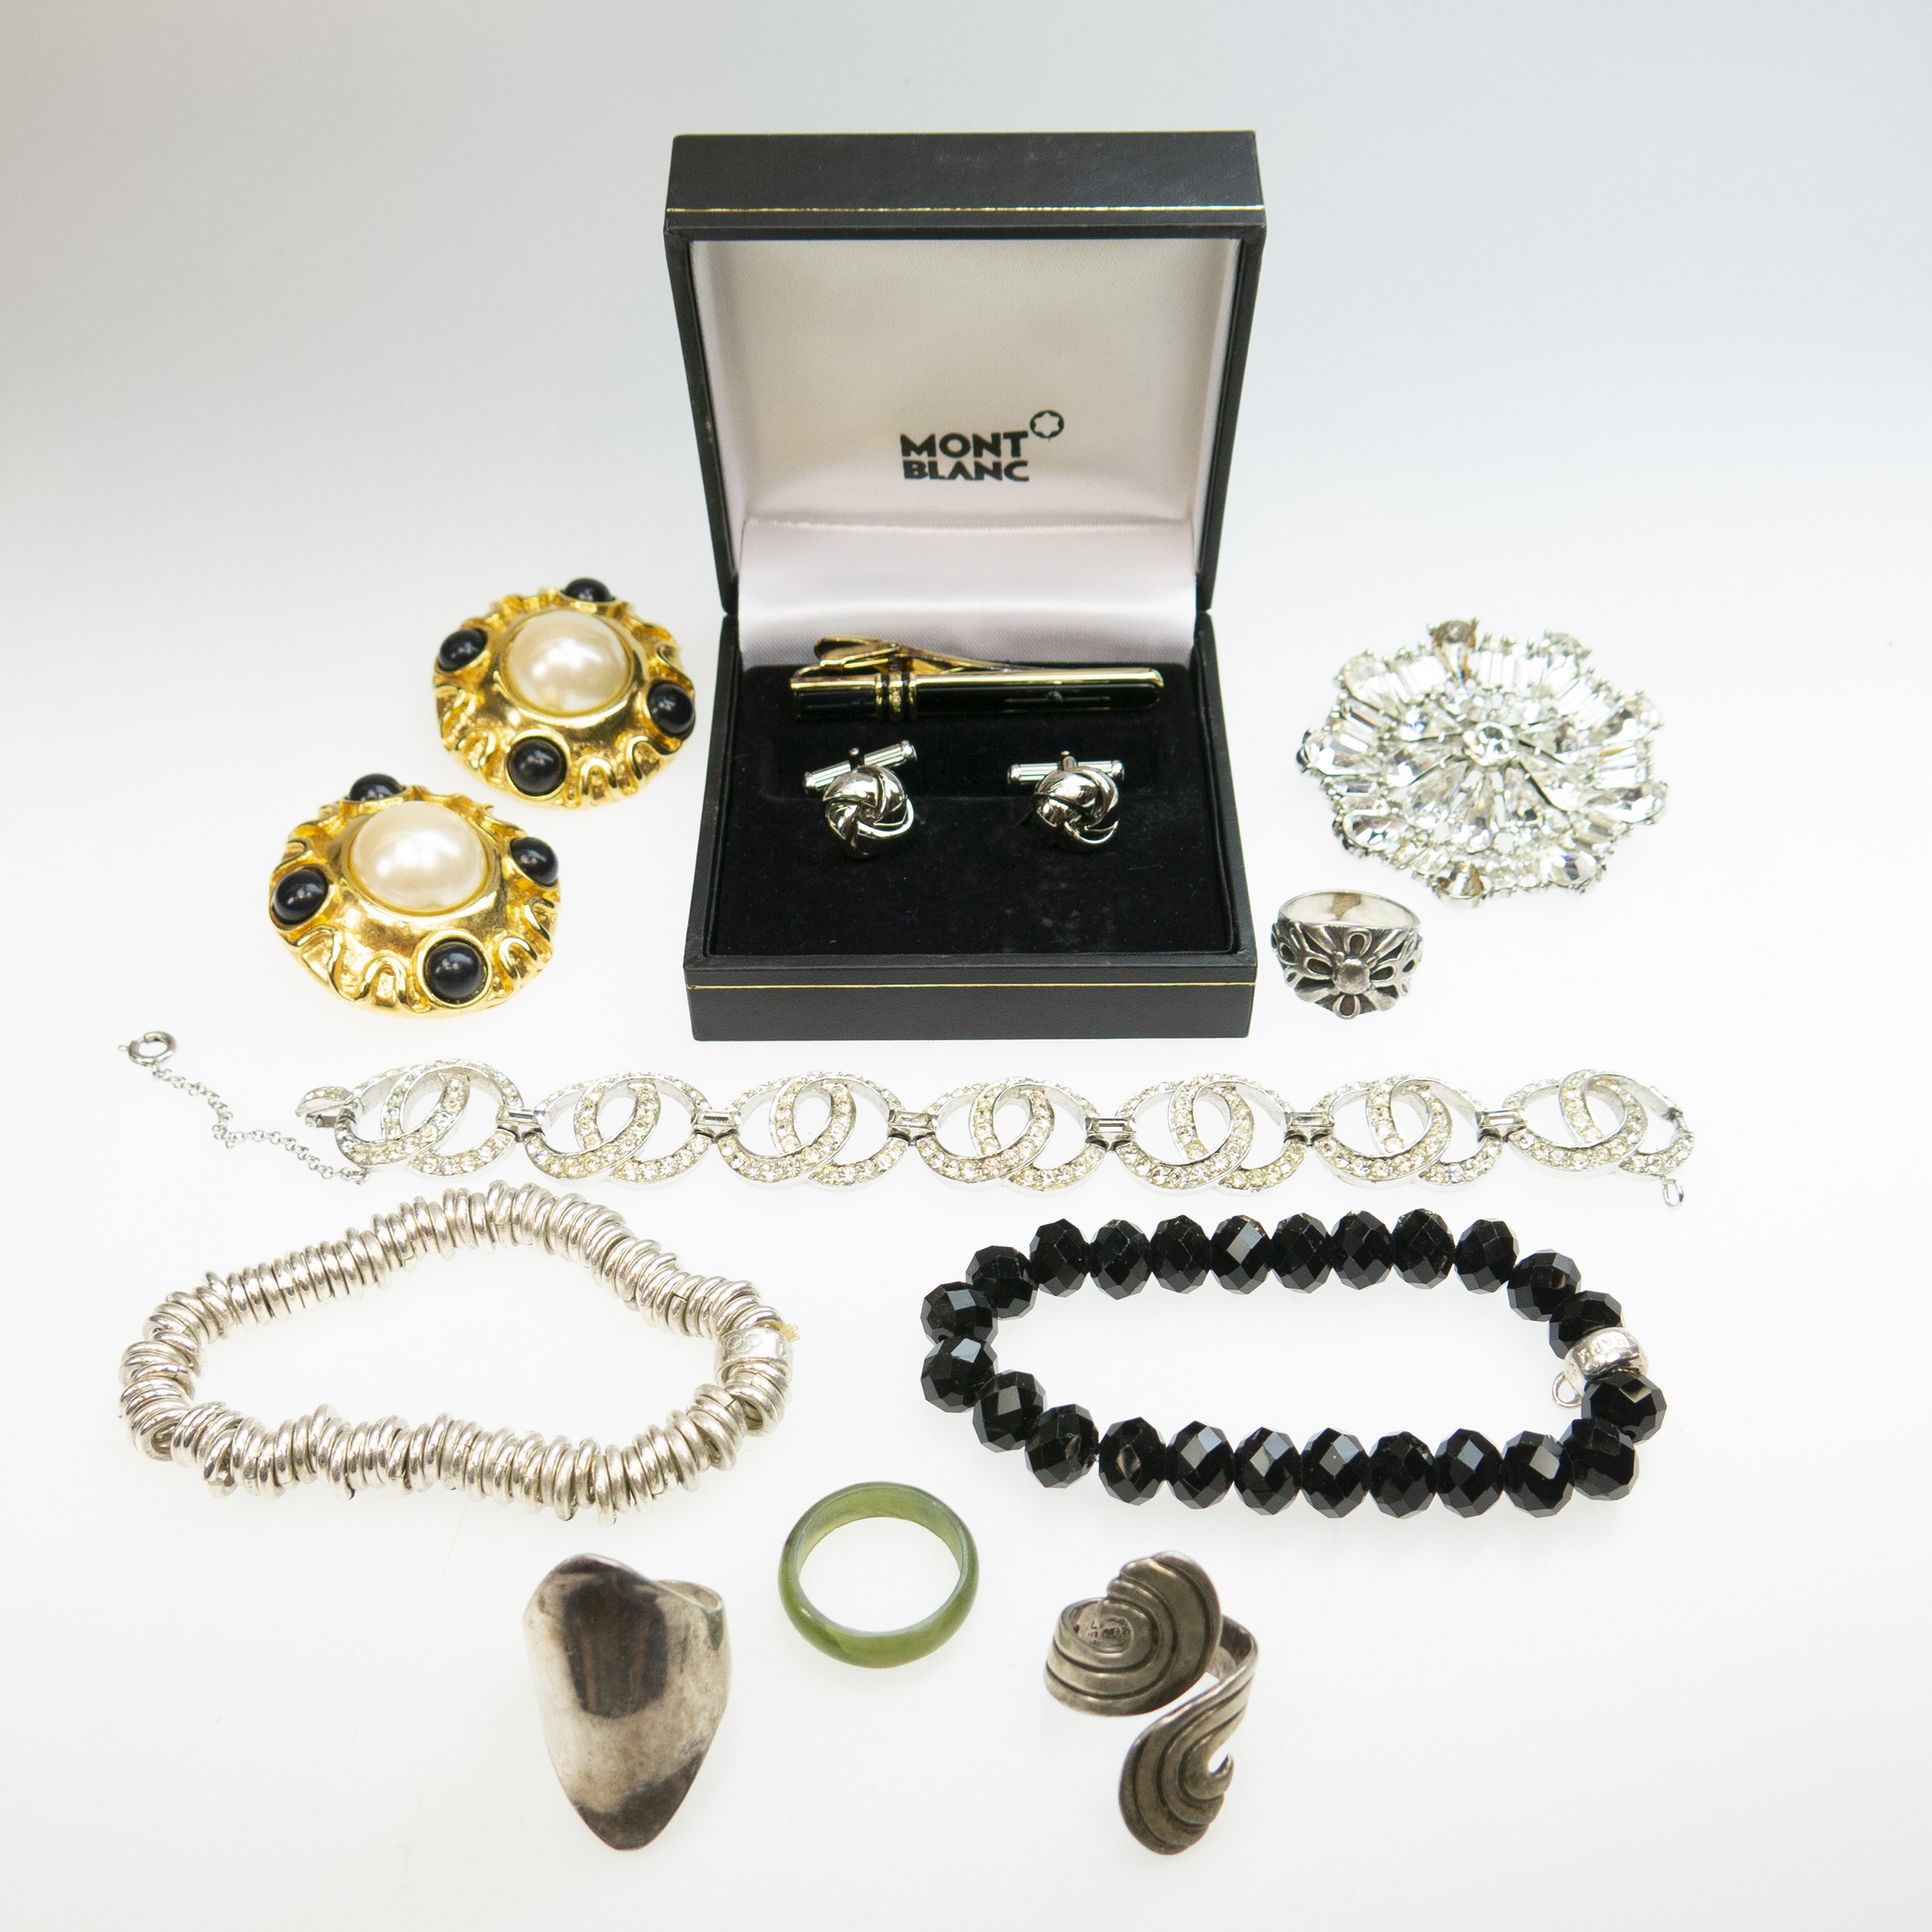 Small Quantity Of Silver And Costume Jewellery